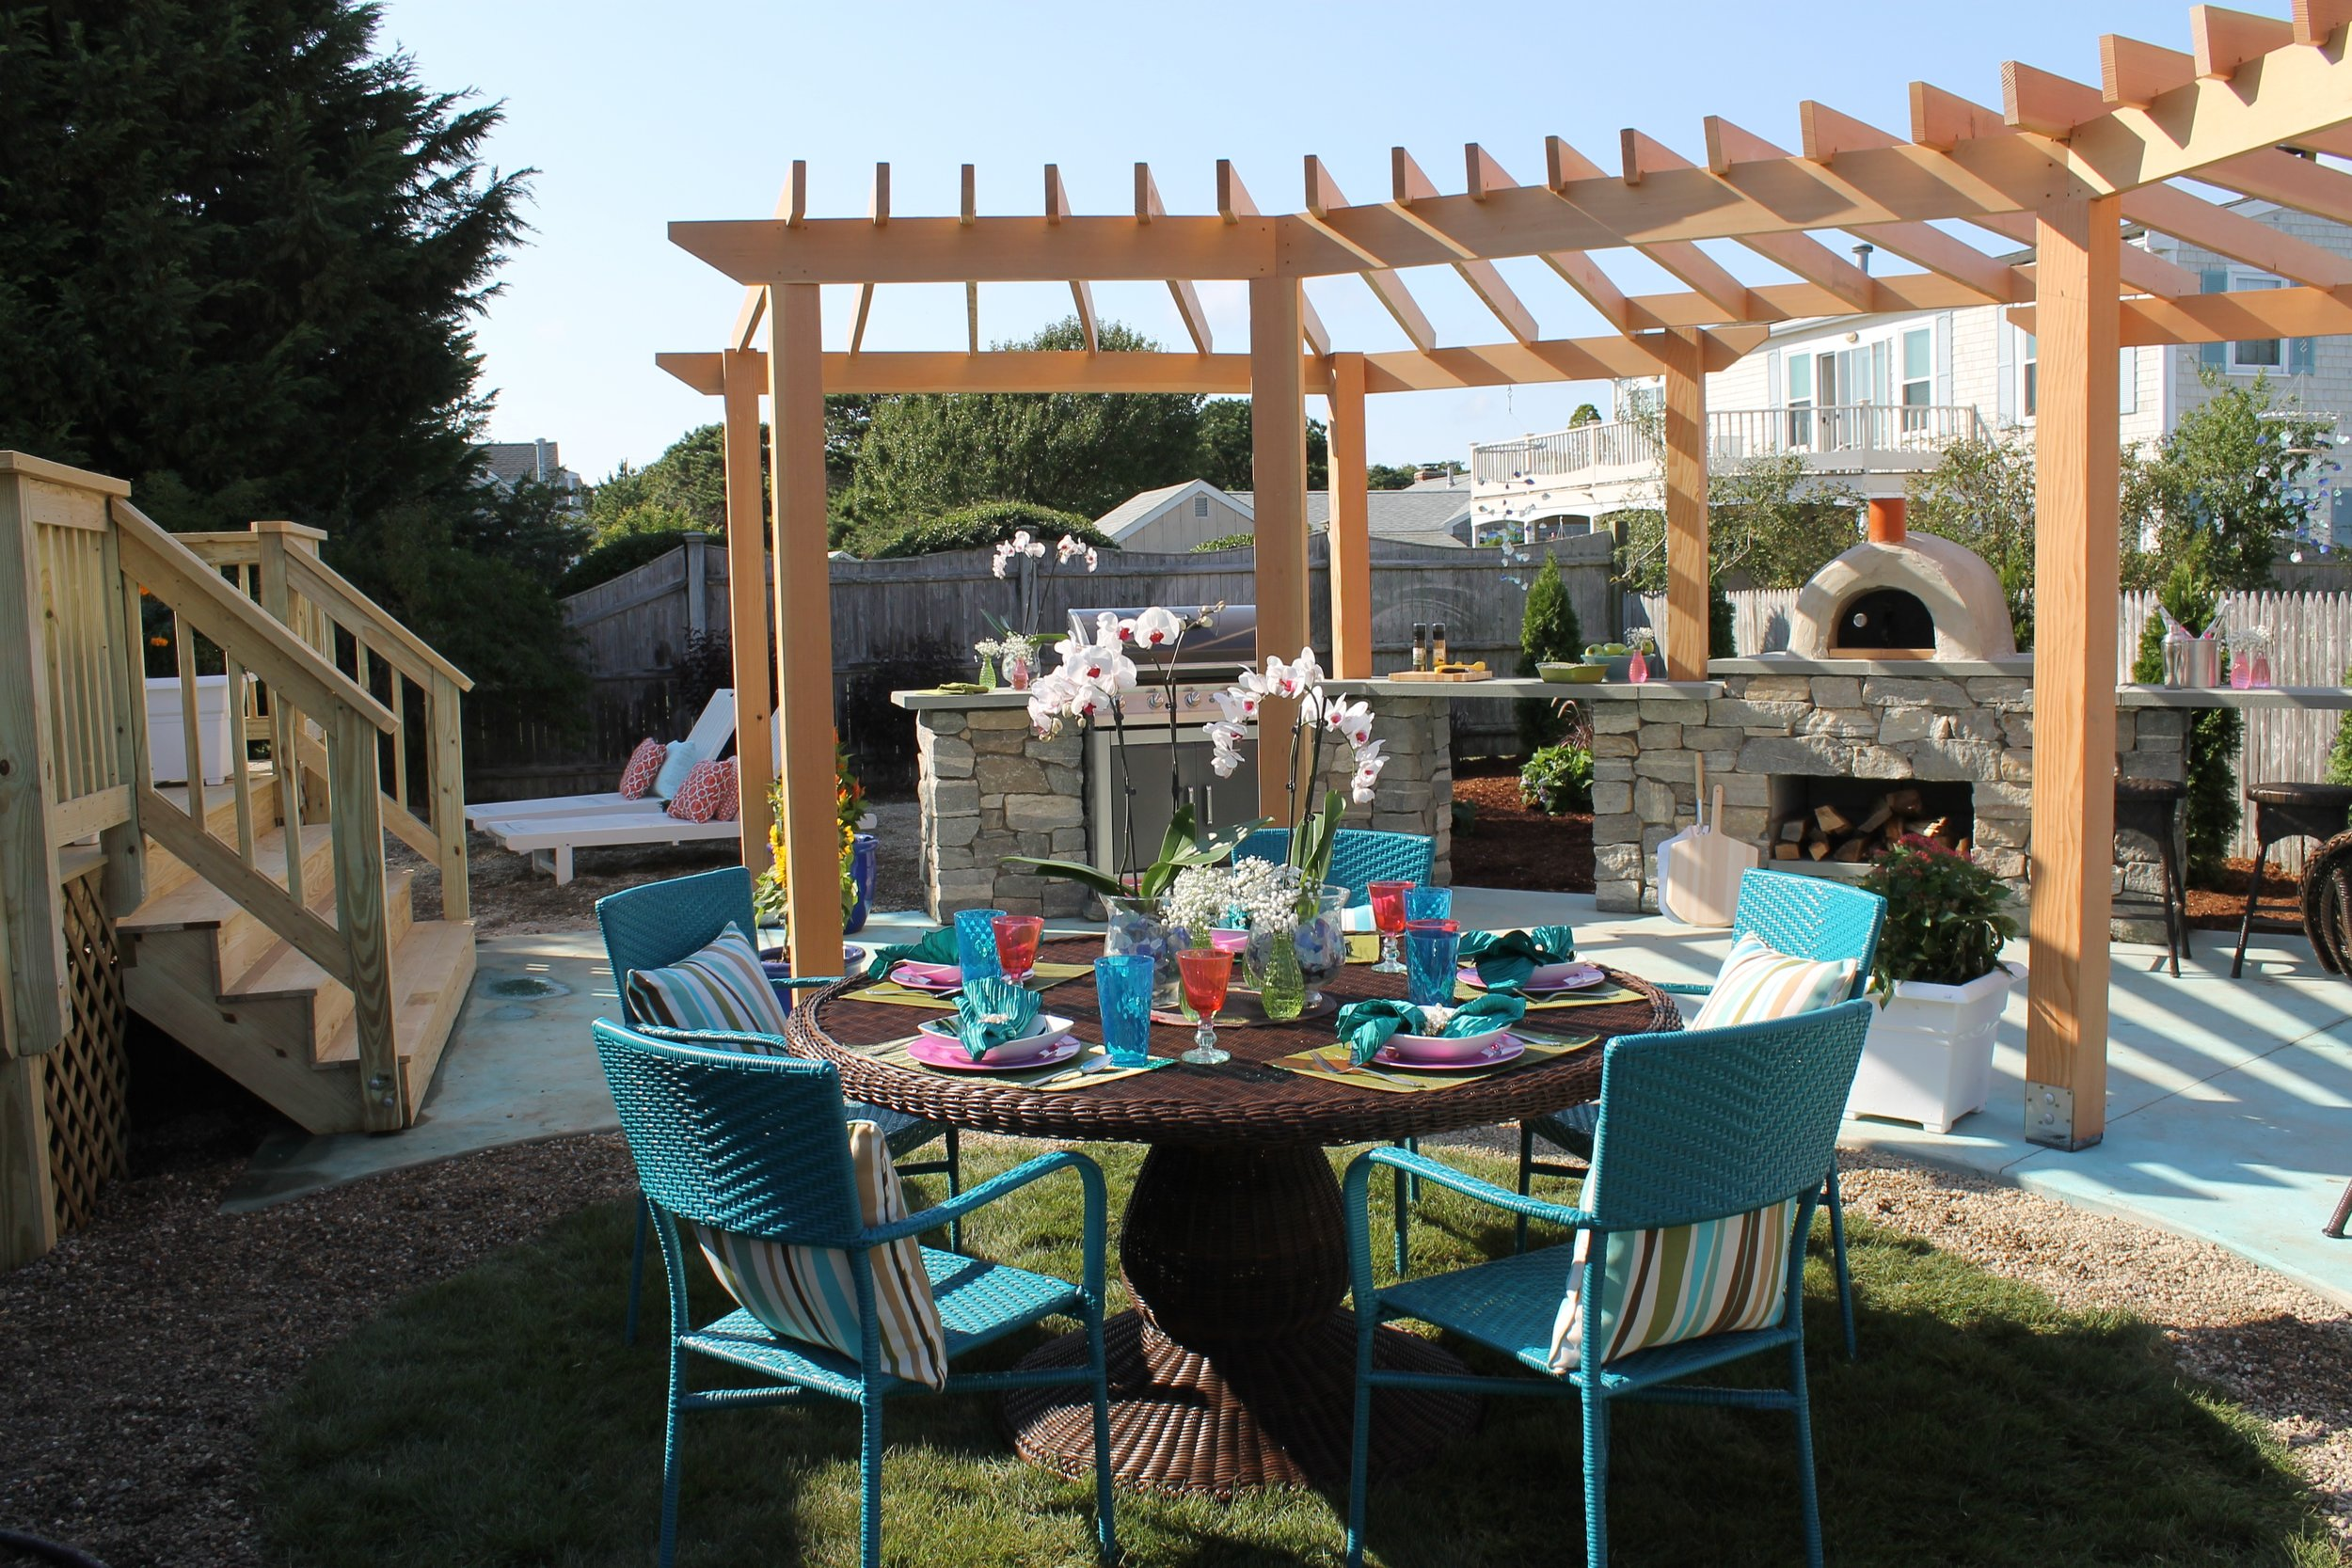 21 The dining area and pergola.jpg